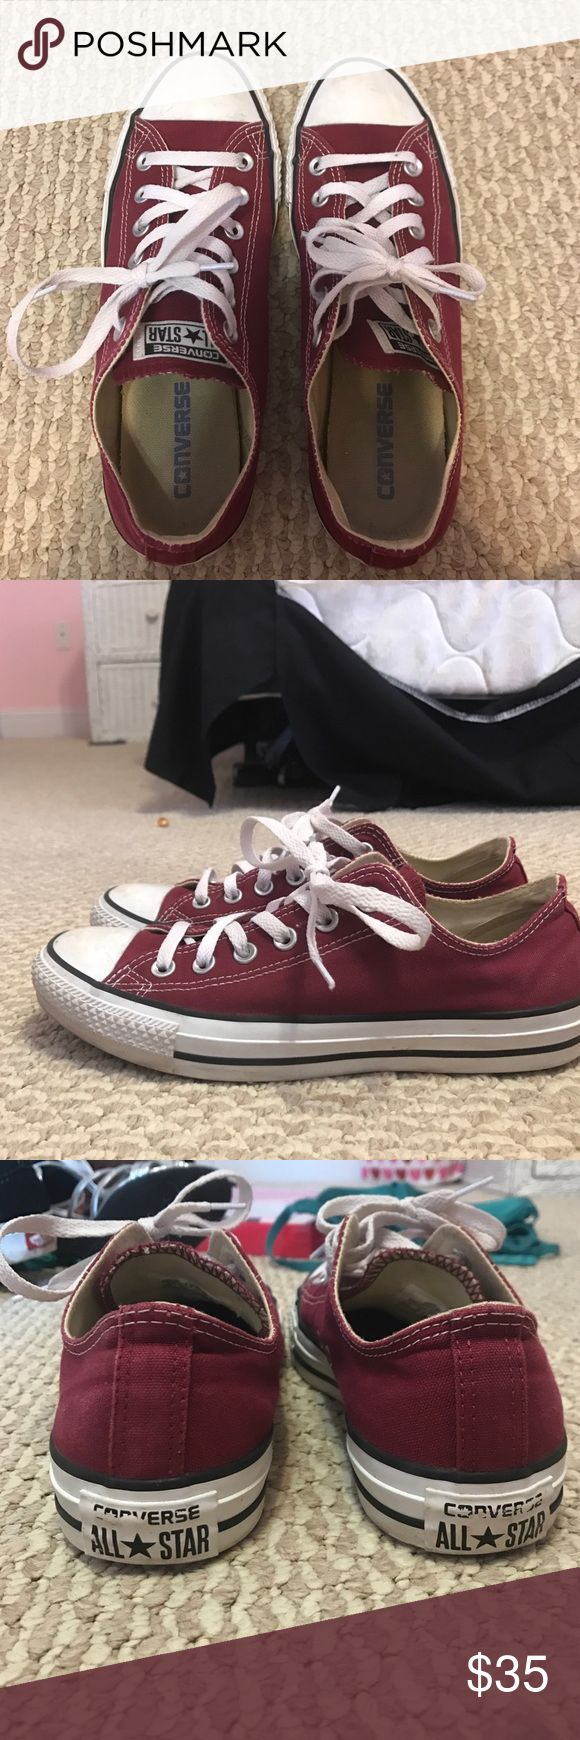 Converse Burgundy converse, lightly worn, slight scuff on the front, size 8 for women, 6 for men, low top Converse Shoes Sneakers